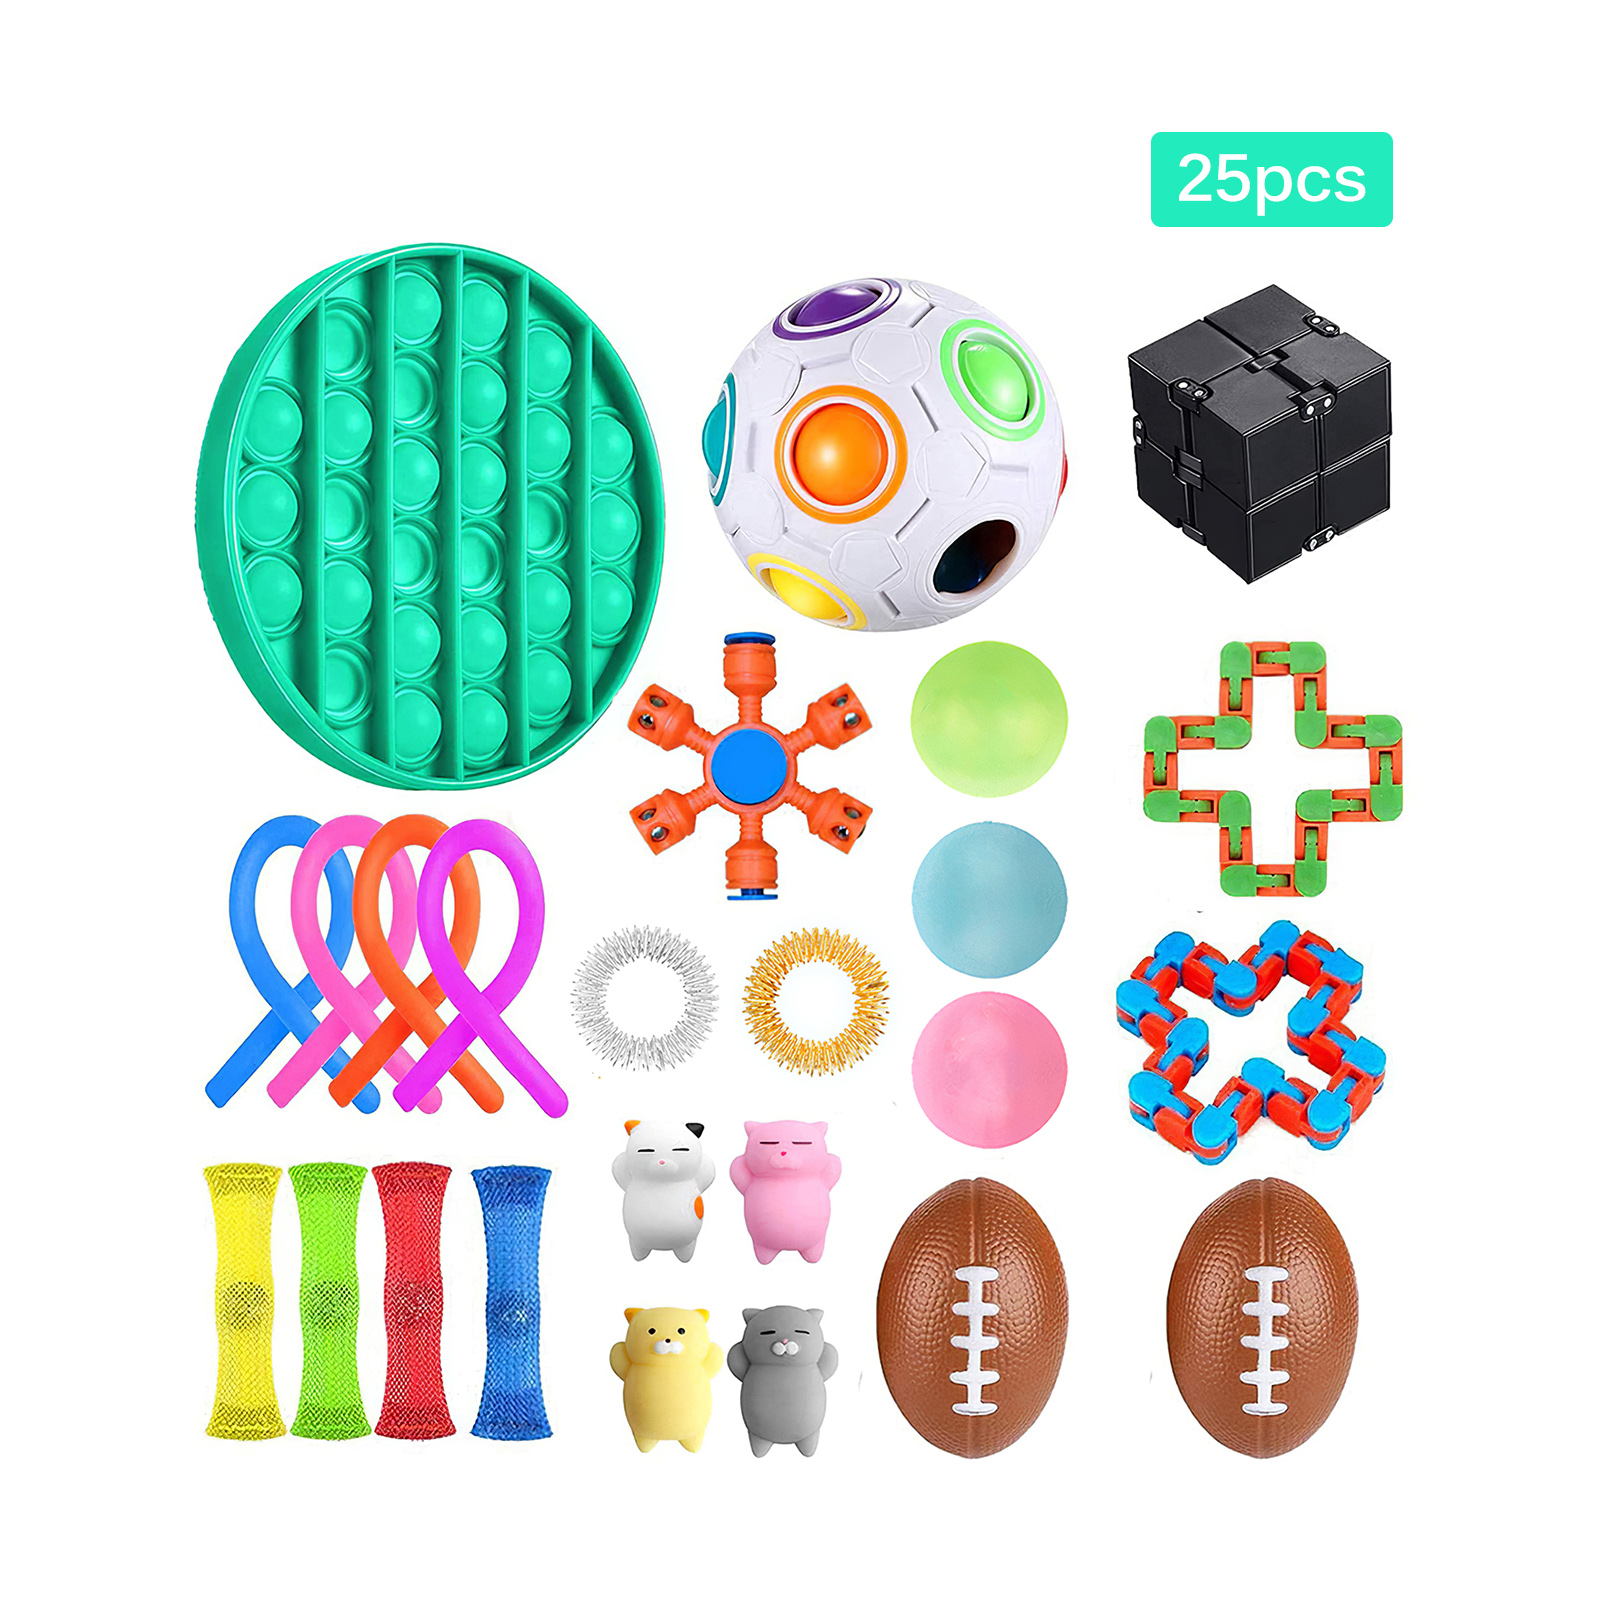 25Pcs/Pack Fidget Sensory Toy Set Stress Relief Toys Autism Anxiety Relief Stress Pop